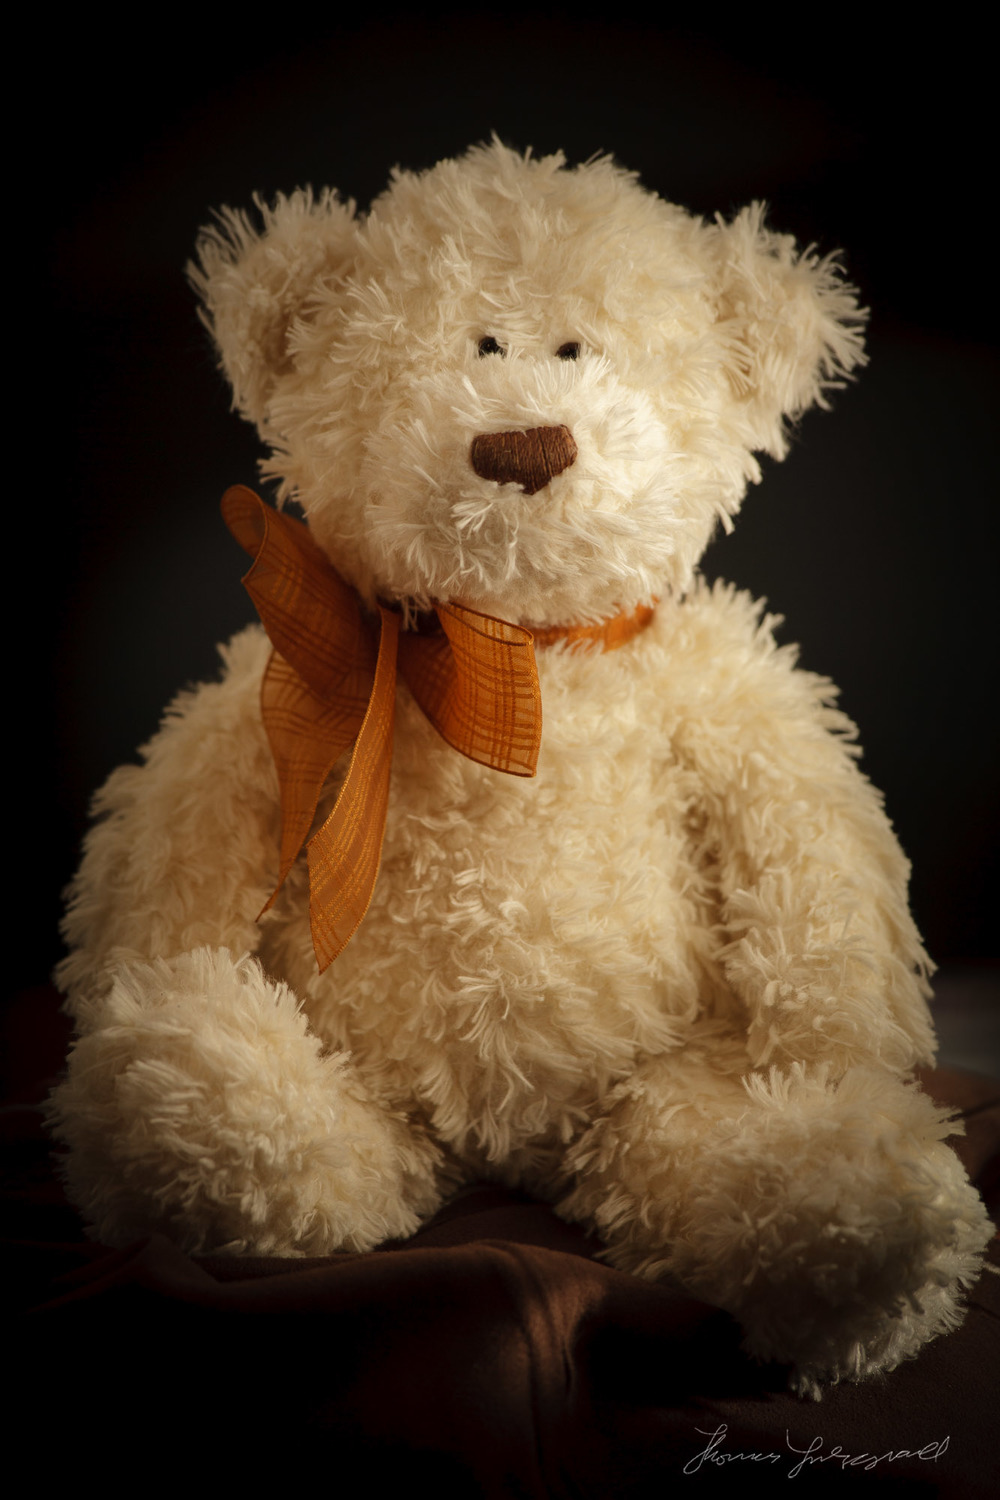 White Bear Teddy Bear Portrait